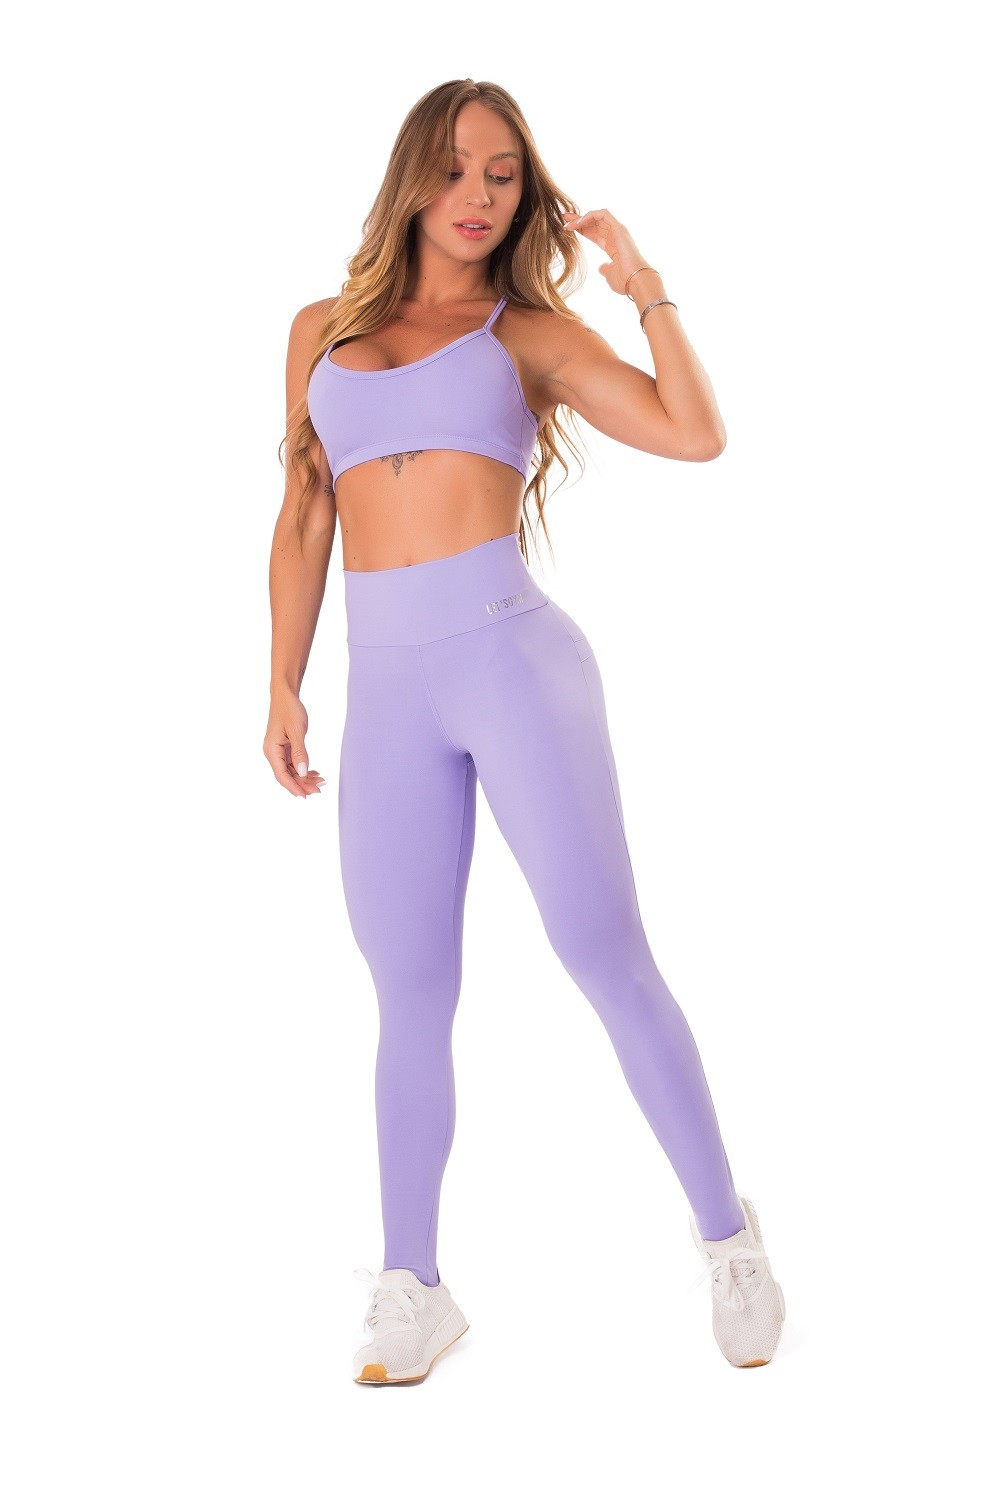 TOP PURE UP SOFT LILÁS LETSGYM